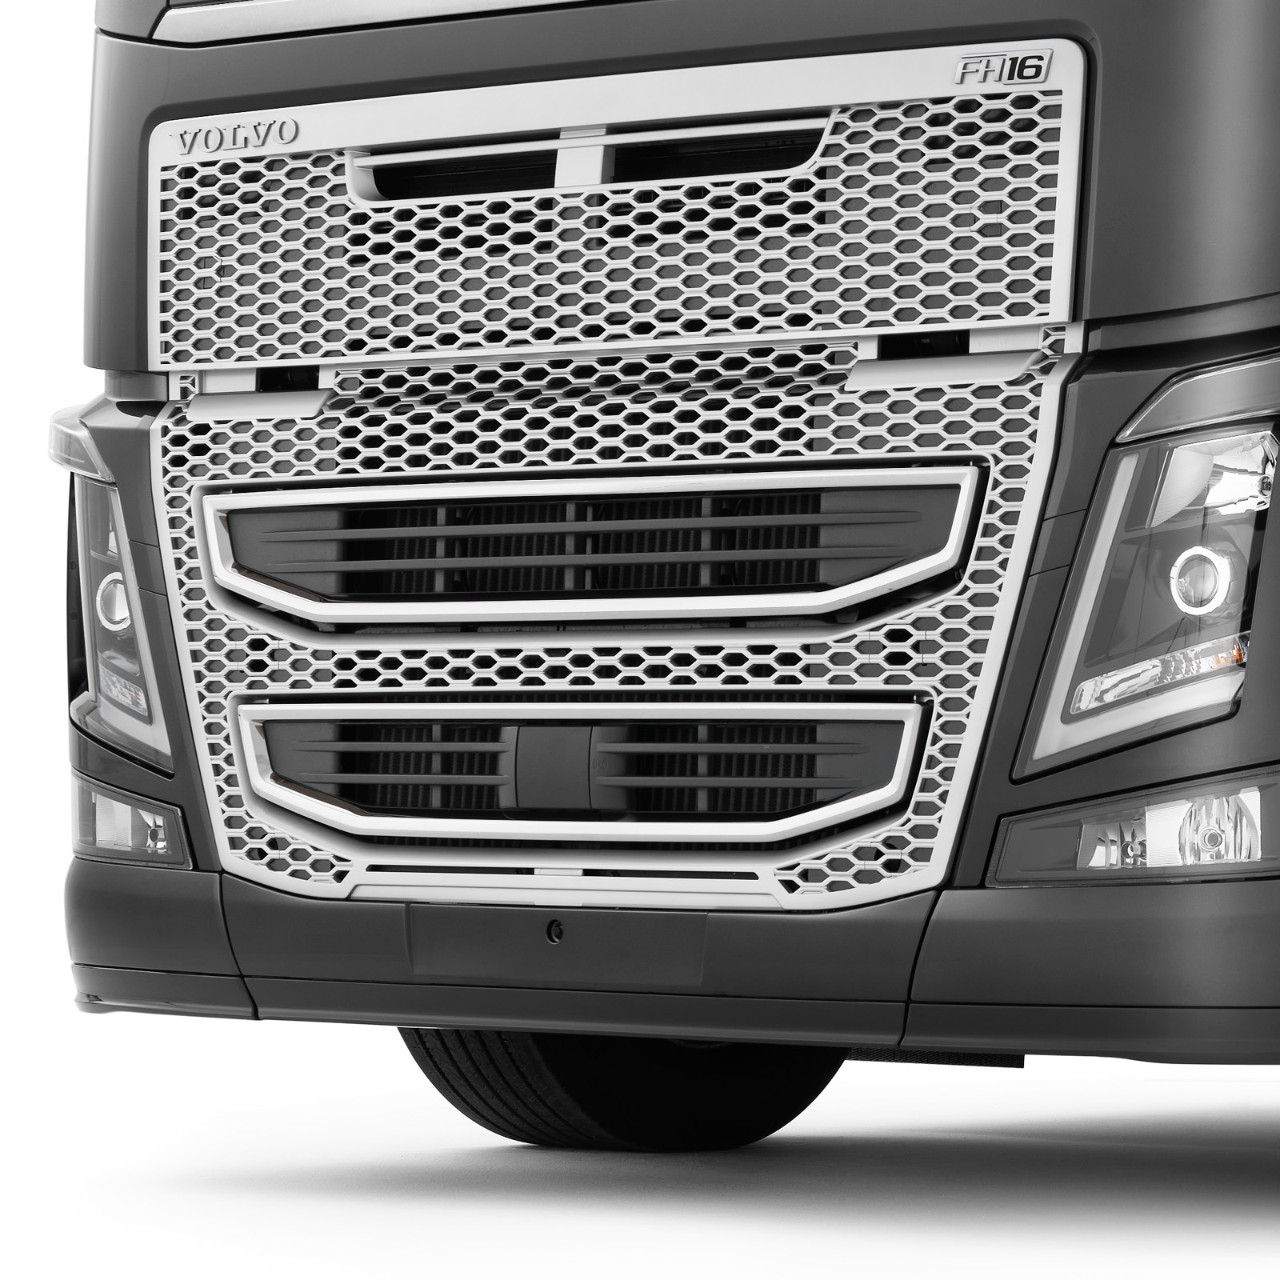 Volvo Trucks front under run protection